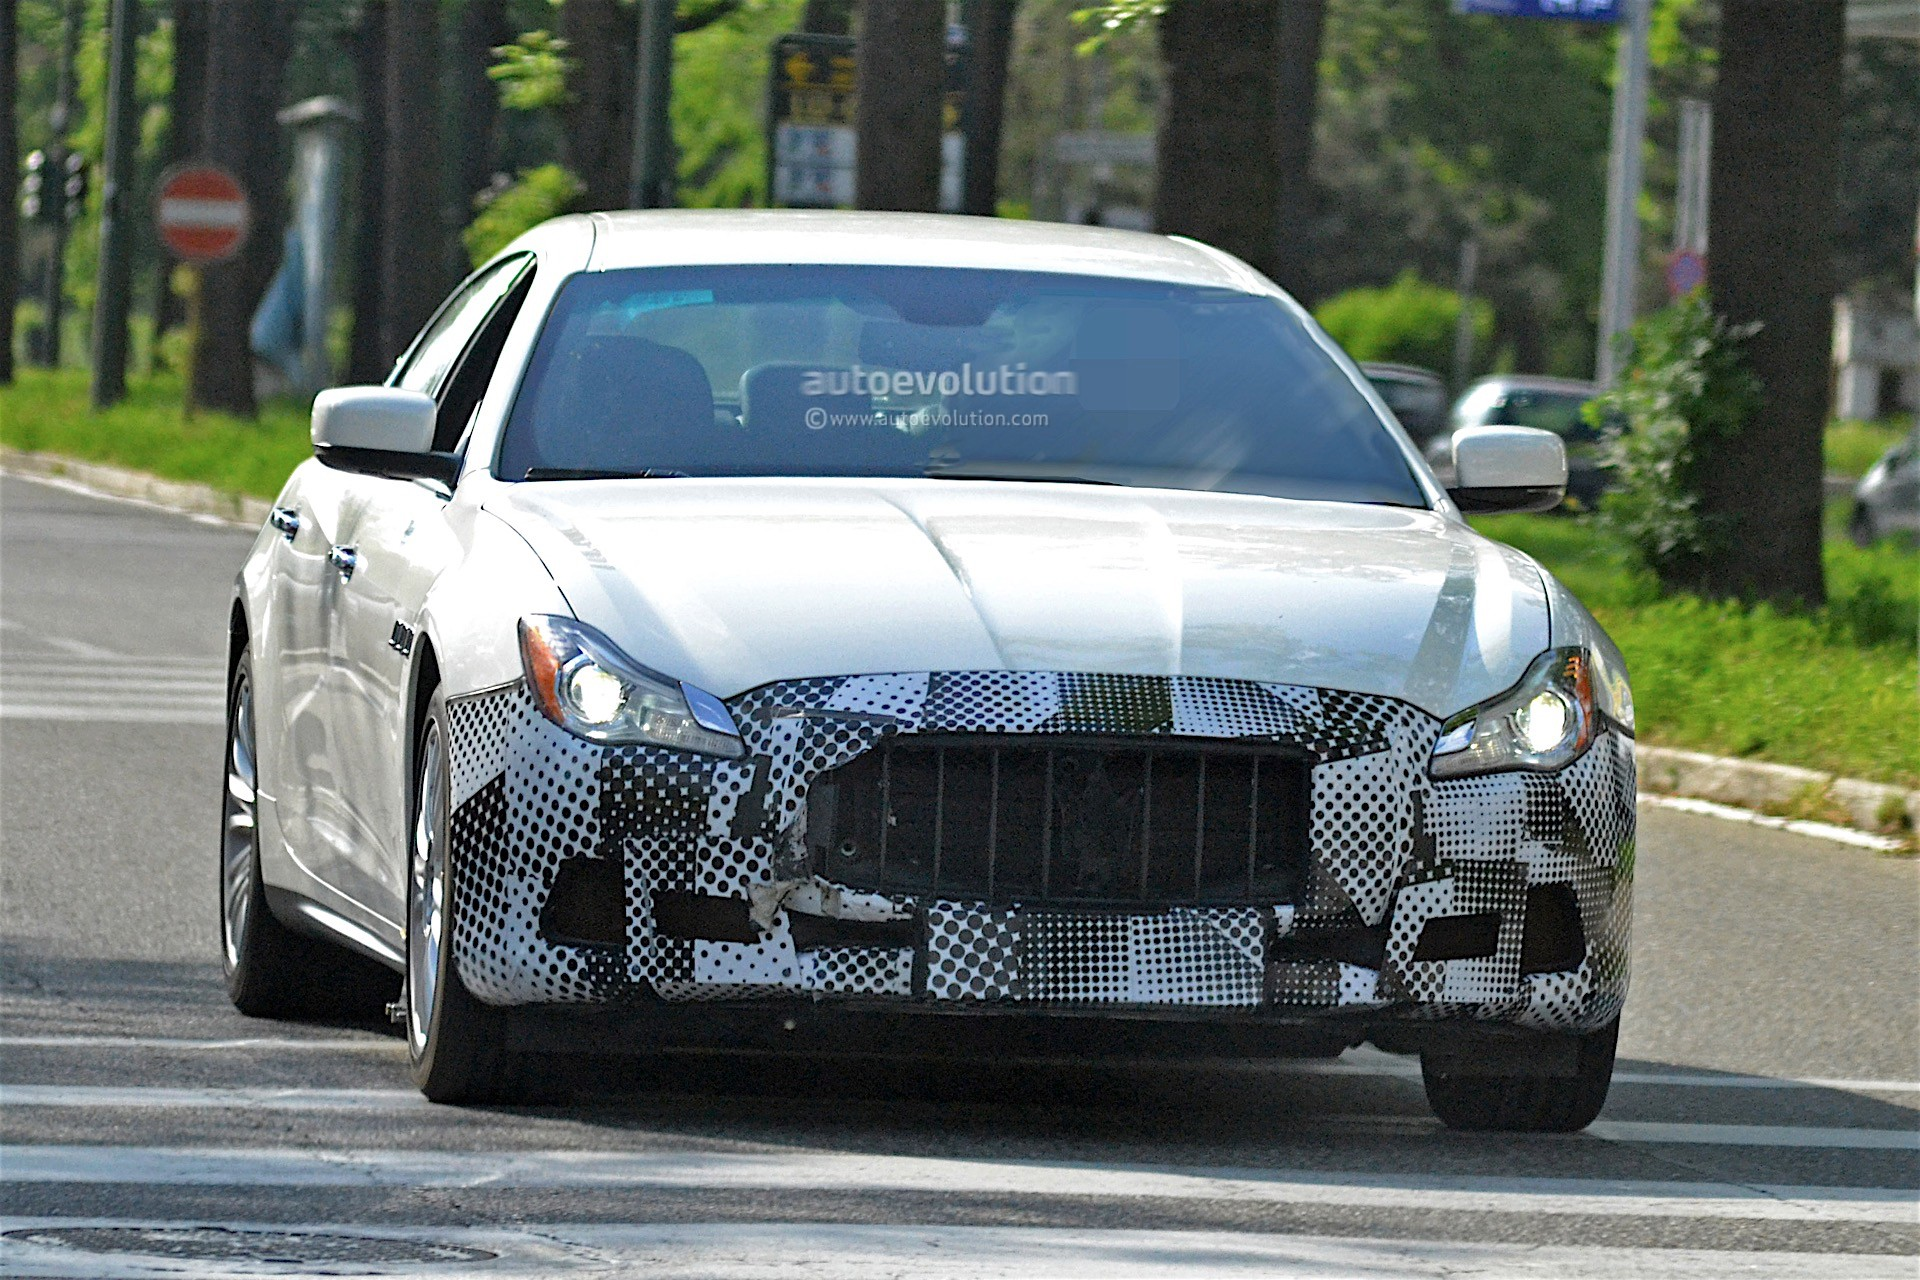 maserati testing 2017 quattroporte facelift with less disguise autoevolution. Black Bedroom Furniture Sets. Home Design Ideas